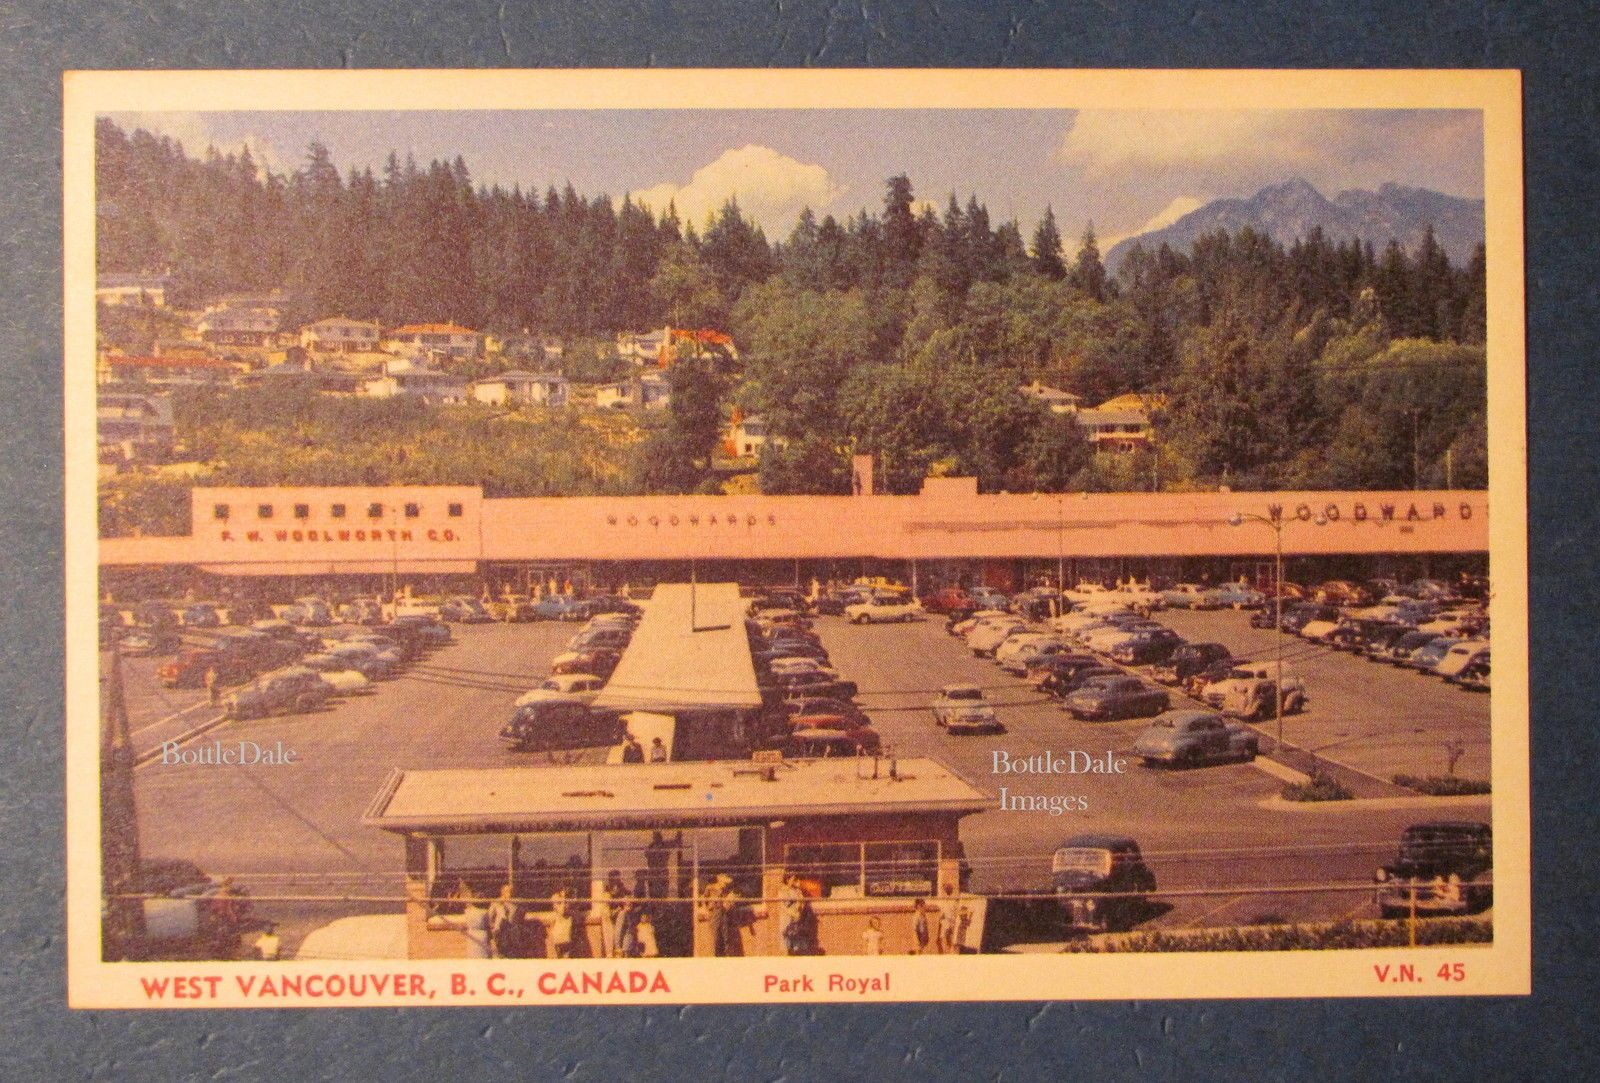 Park Royal Mall In West Vancouver Bc Canada West Vancouver Vancouver Vancouver Bc Canada